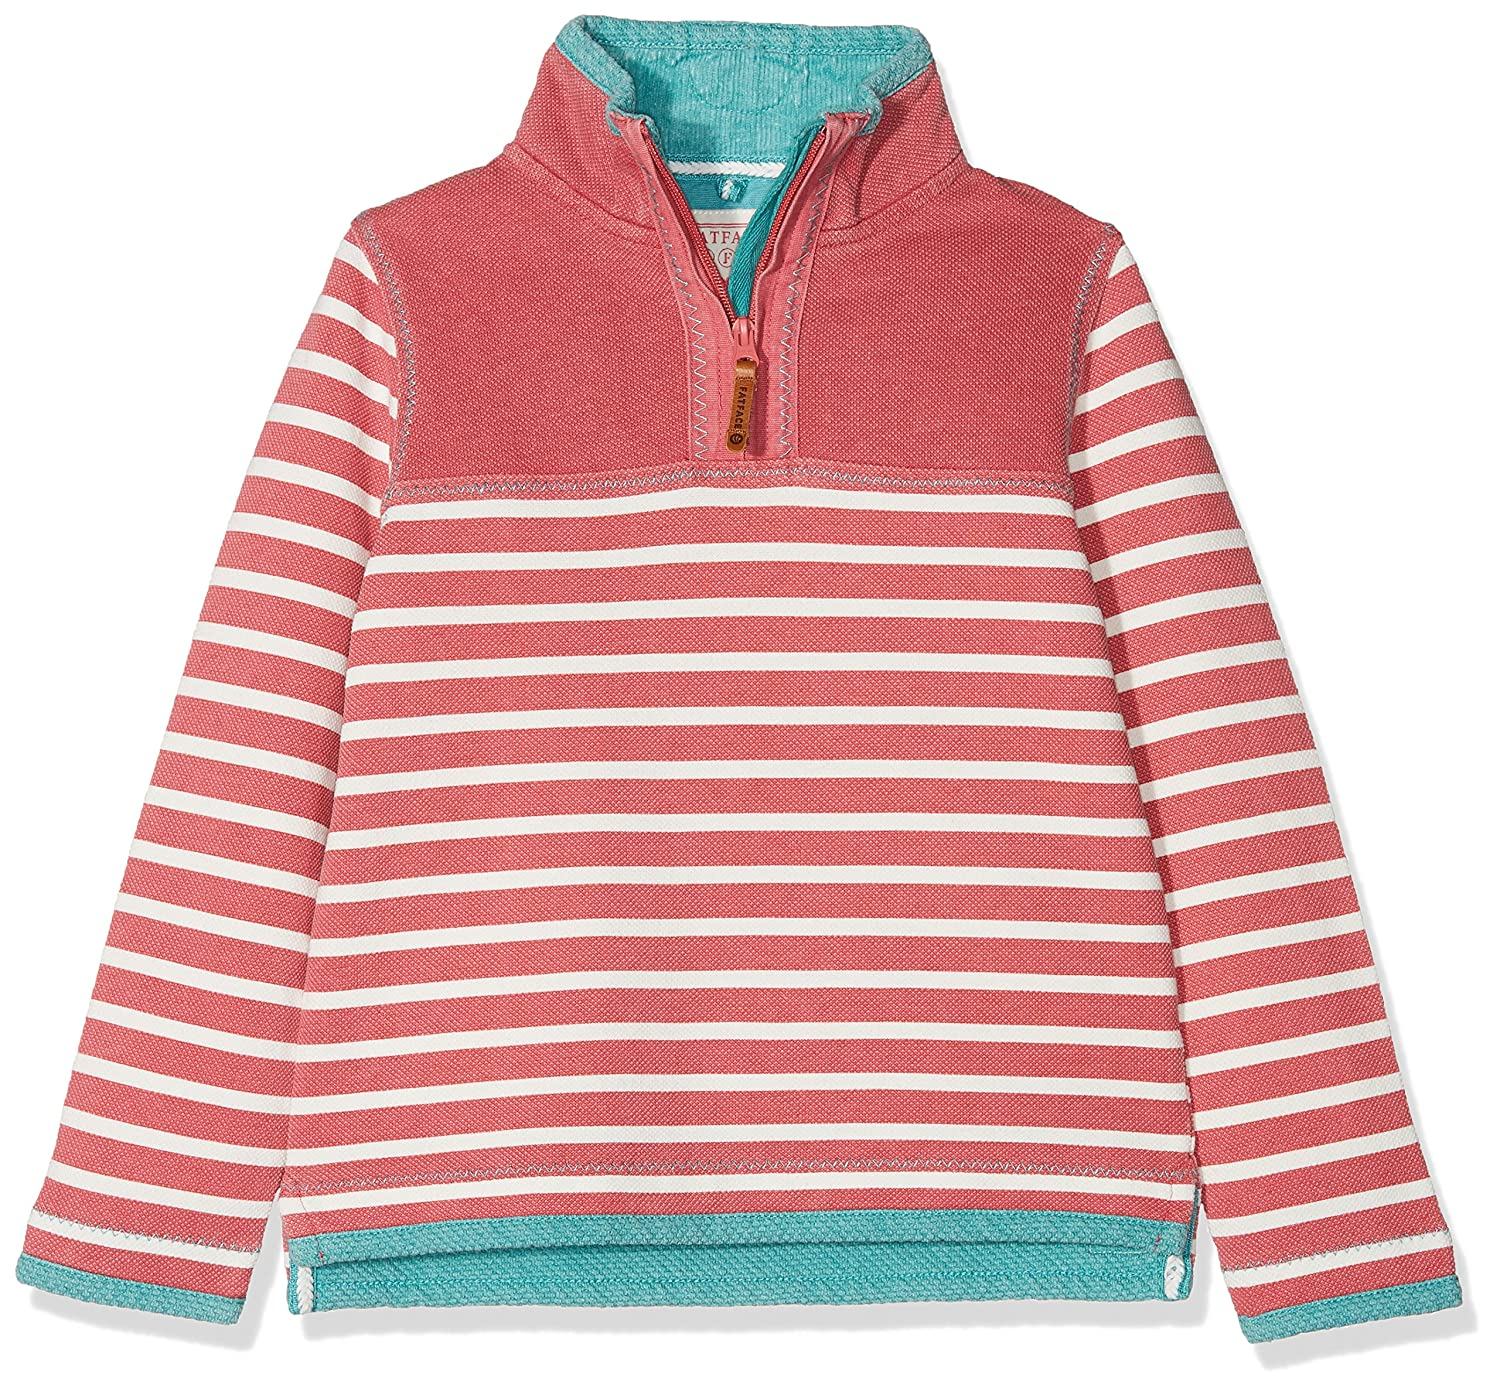 Rouge (Rosehip) 6-7 ans Fat Face Airlie Stripe, Sweat-Shirt Fille